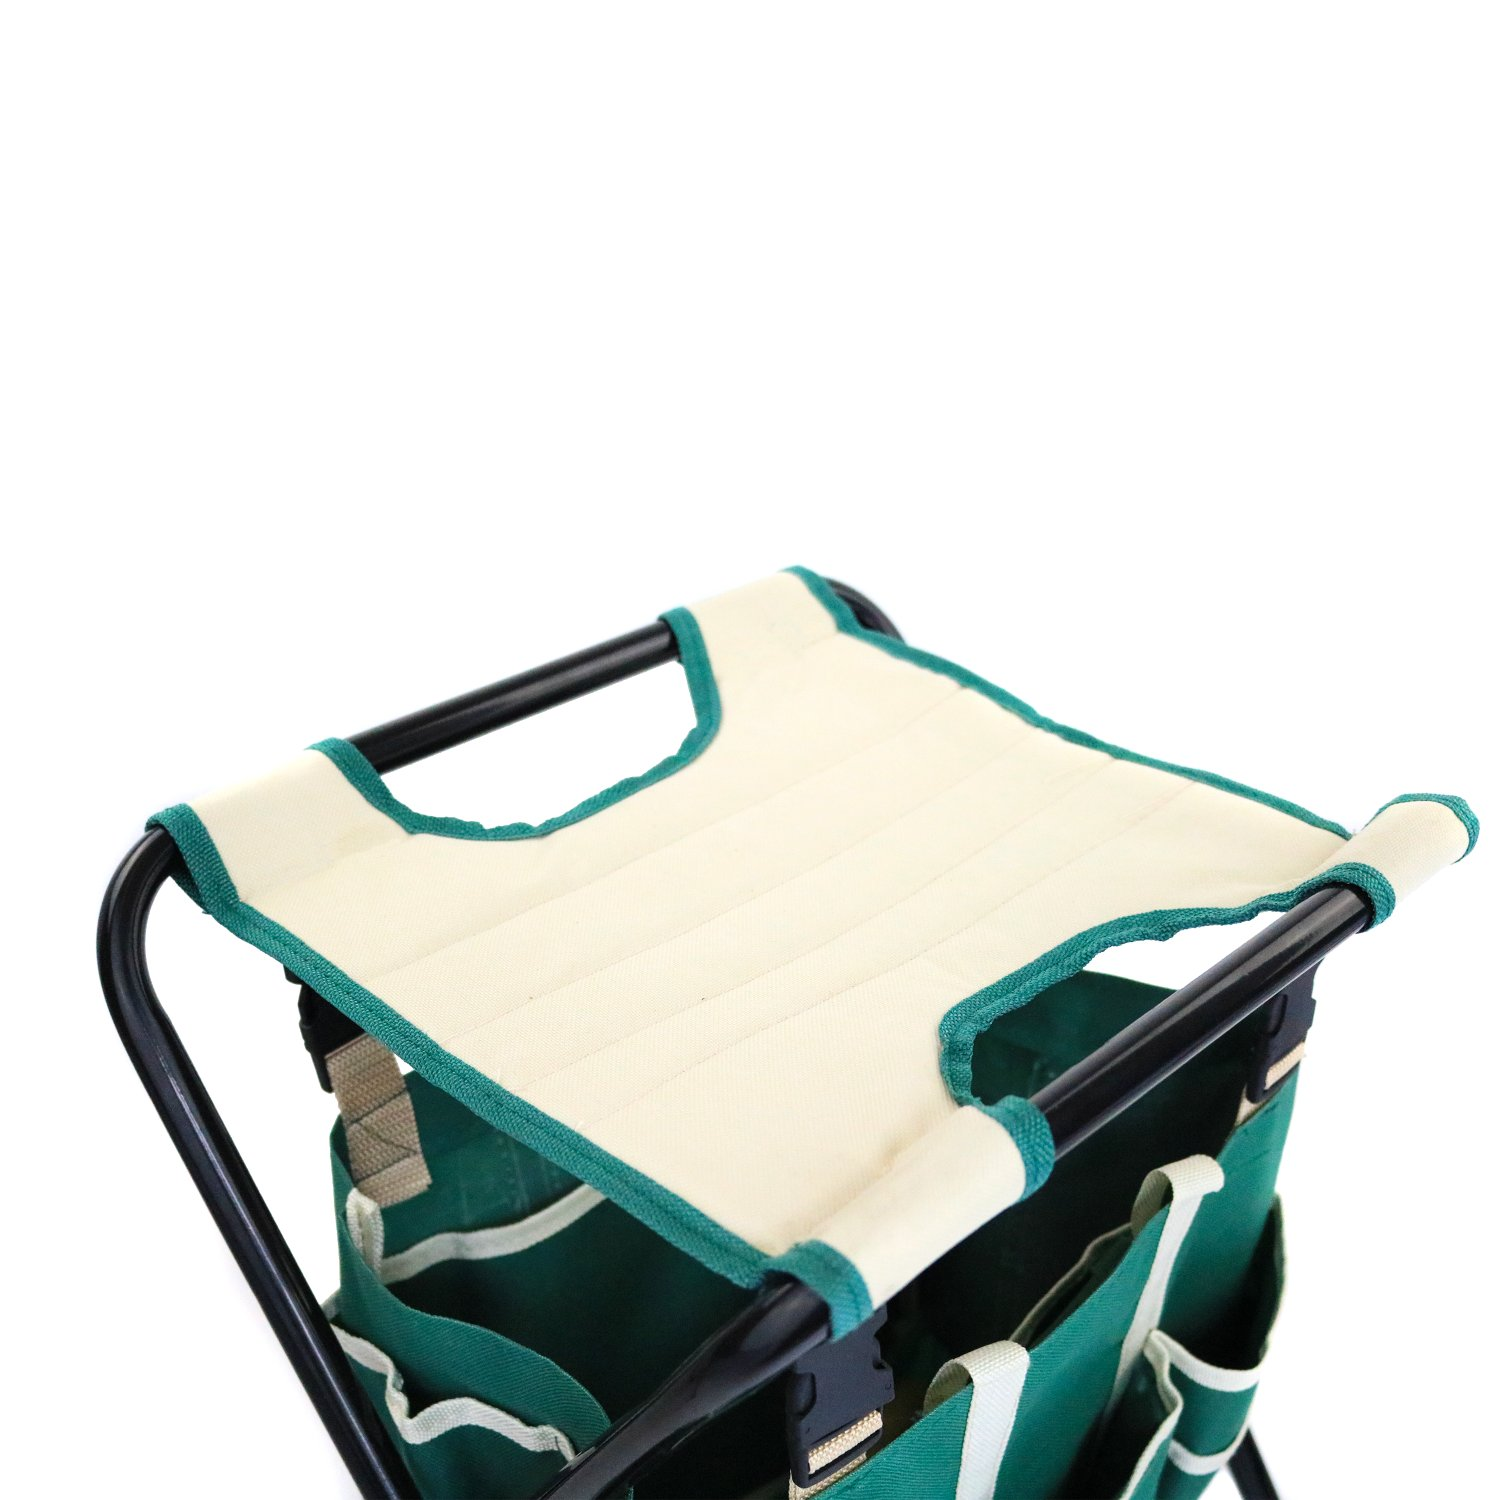 ... Folding Gardeners Stool with 5pc Tools and Storage Bag Gardening ...  sc 1 st  Oypla & Folding Gardeners Stool with 5pc Tools and Storage Bag Gardening ... islam-shia.org